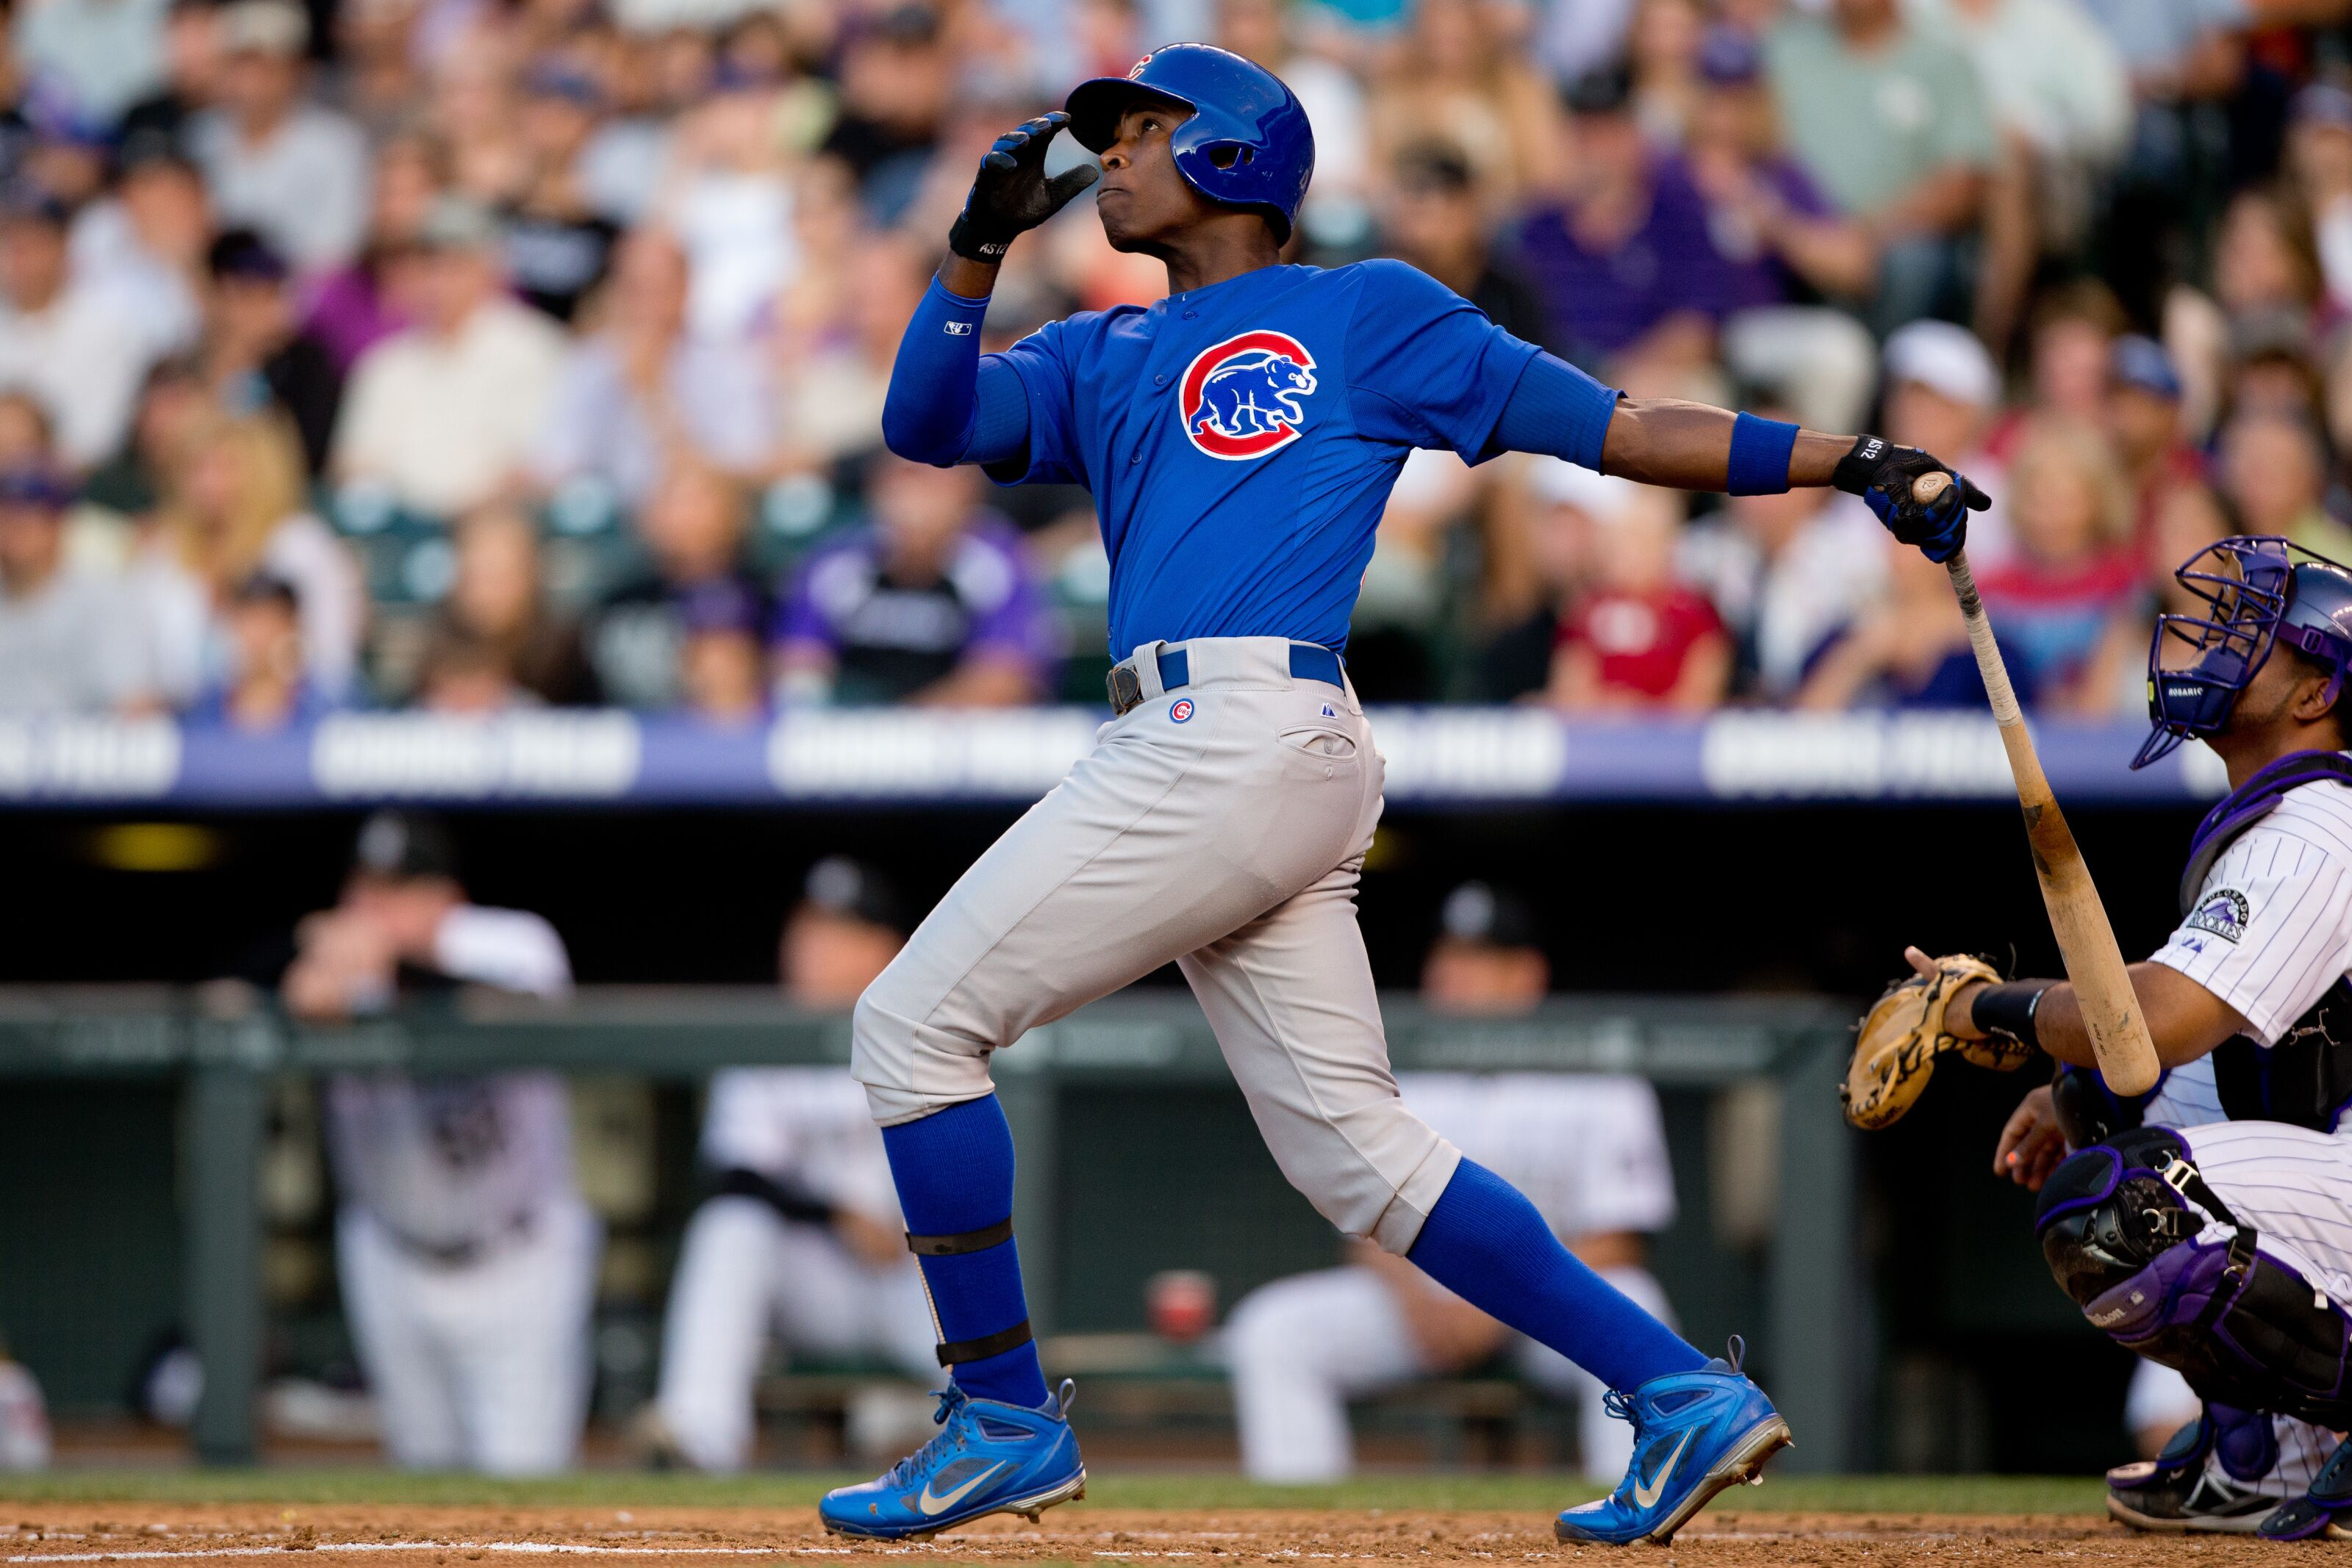 Chicago Cubs: Alfonso Soriano and Sammy Sosa vying for Cooperstown